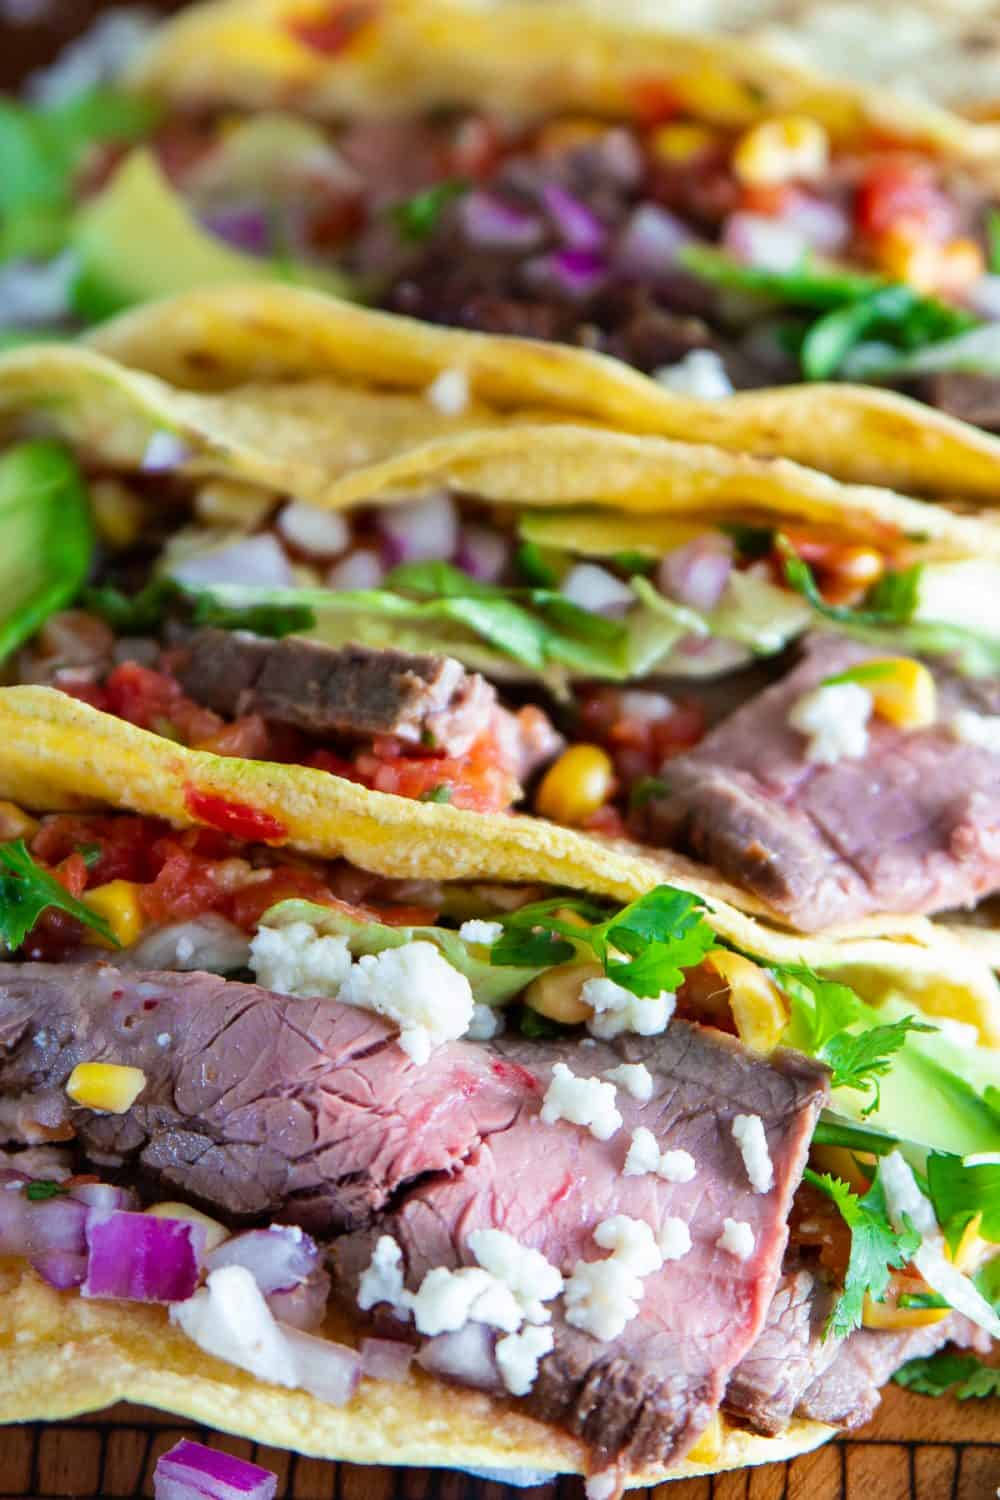 Up close picture of steak taco recipe featuring grilled flank steak, corn tortillas, cilantro, salsa, and cheese